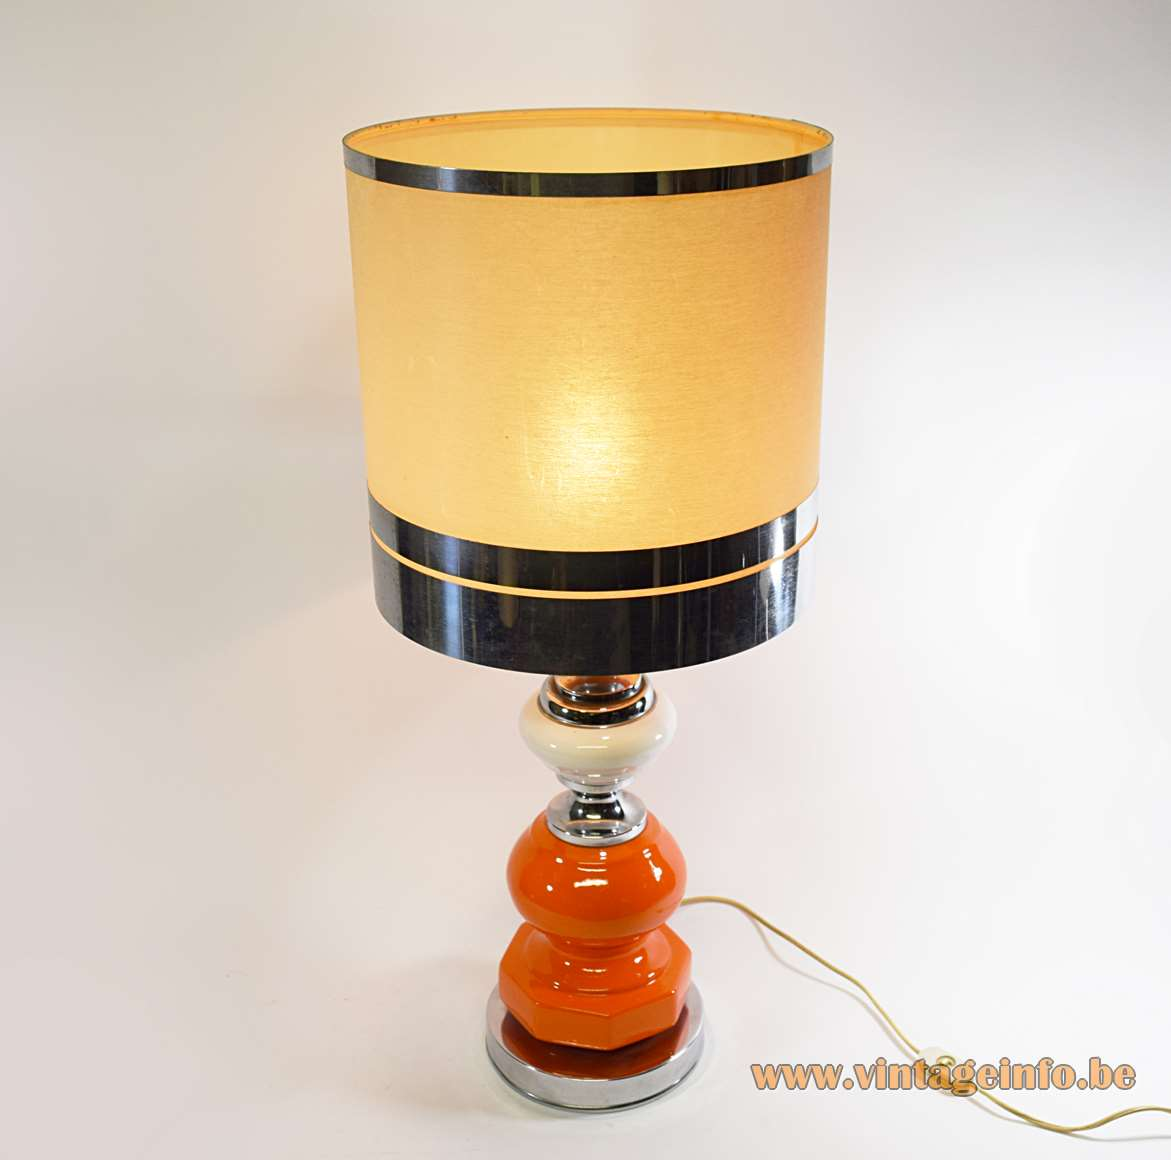 Ceramics table lamp orange white chrome base geometric hexagonal Barbier style globe Massive 1960s 1970s MCM Mid-Century Modern